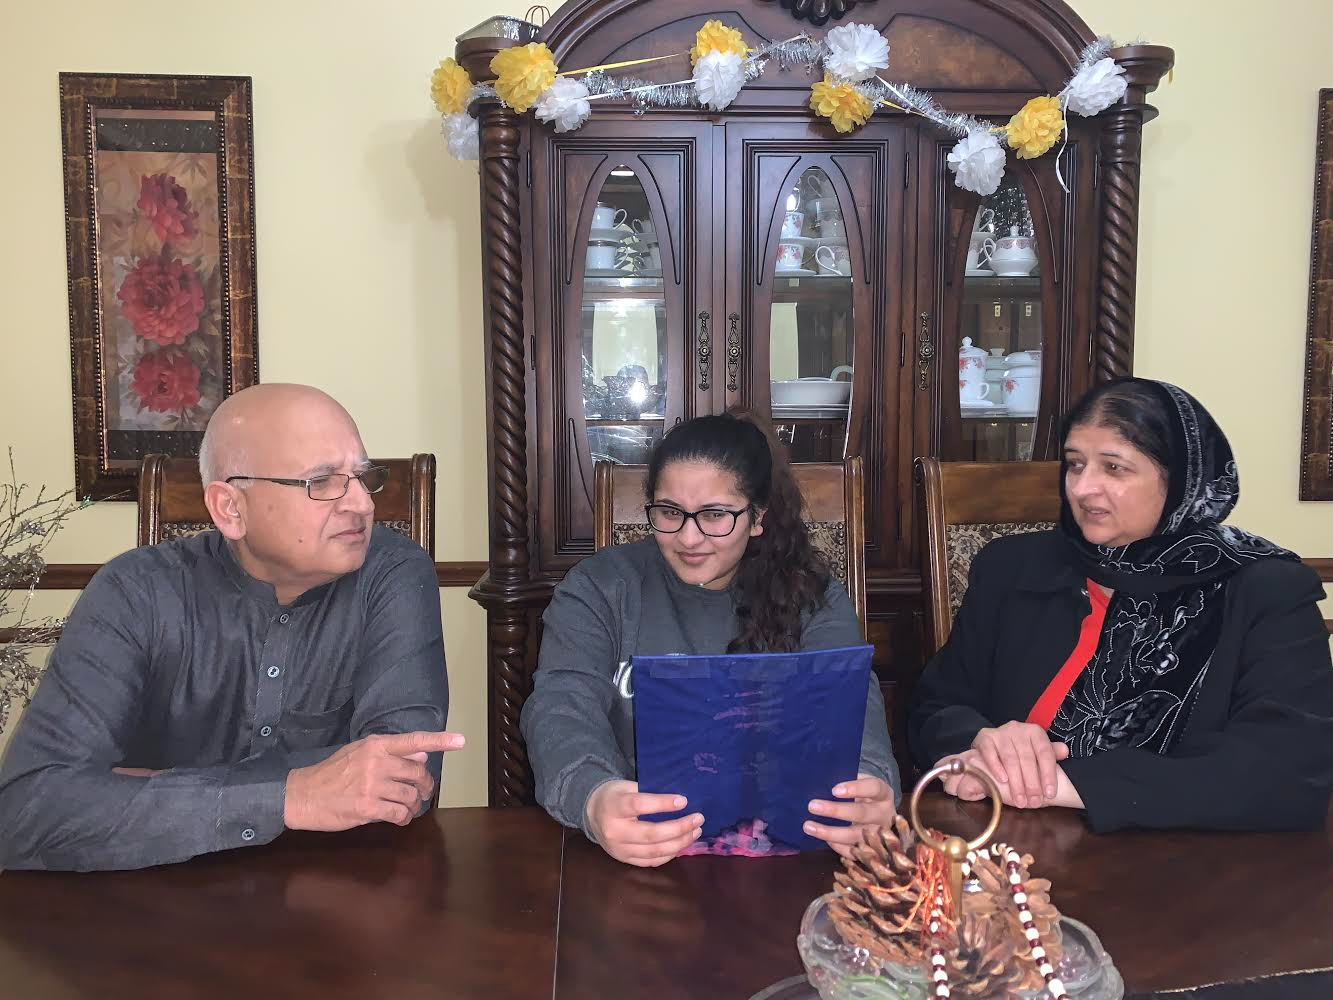 """Senior Umeera Farooq goes through college application papers with her parents at the dinner table. Farooq's parents, who immigrated to America, struggled with assisting her through the application process. """"My parents have not attended college, and I'm a first-generation college student,"""" Farooq said. """"it's gotten easier especially because I know now I've grown so I can help myself."""""""